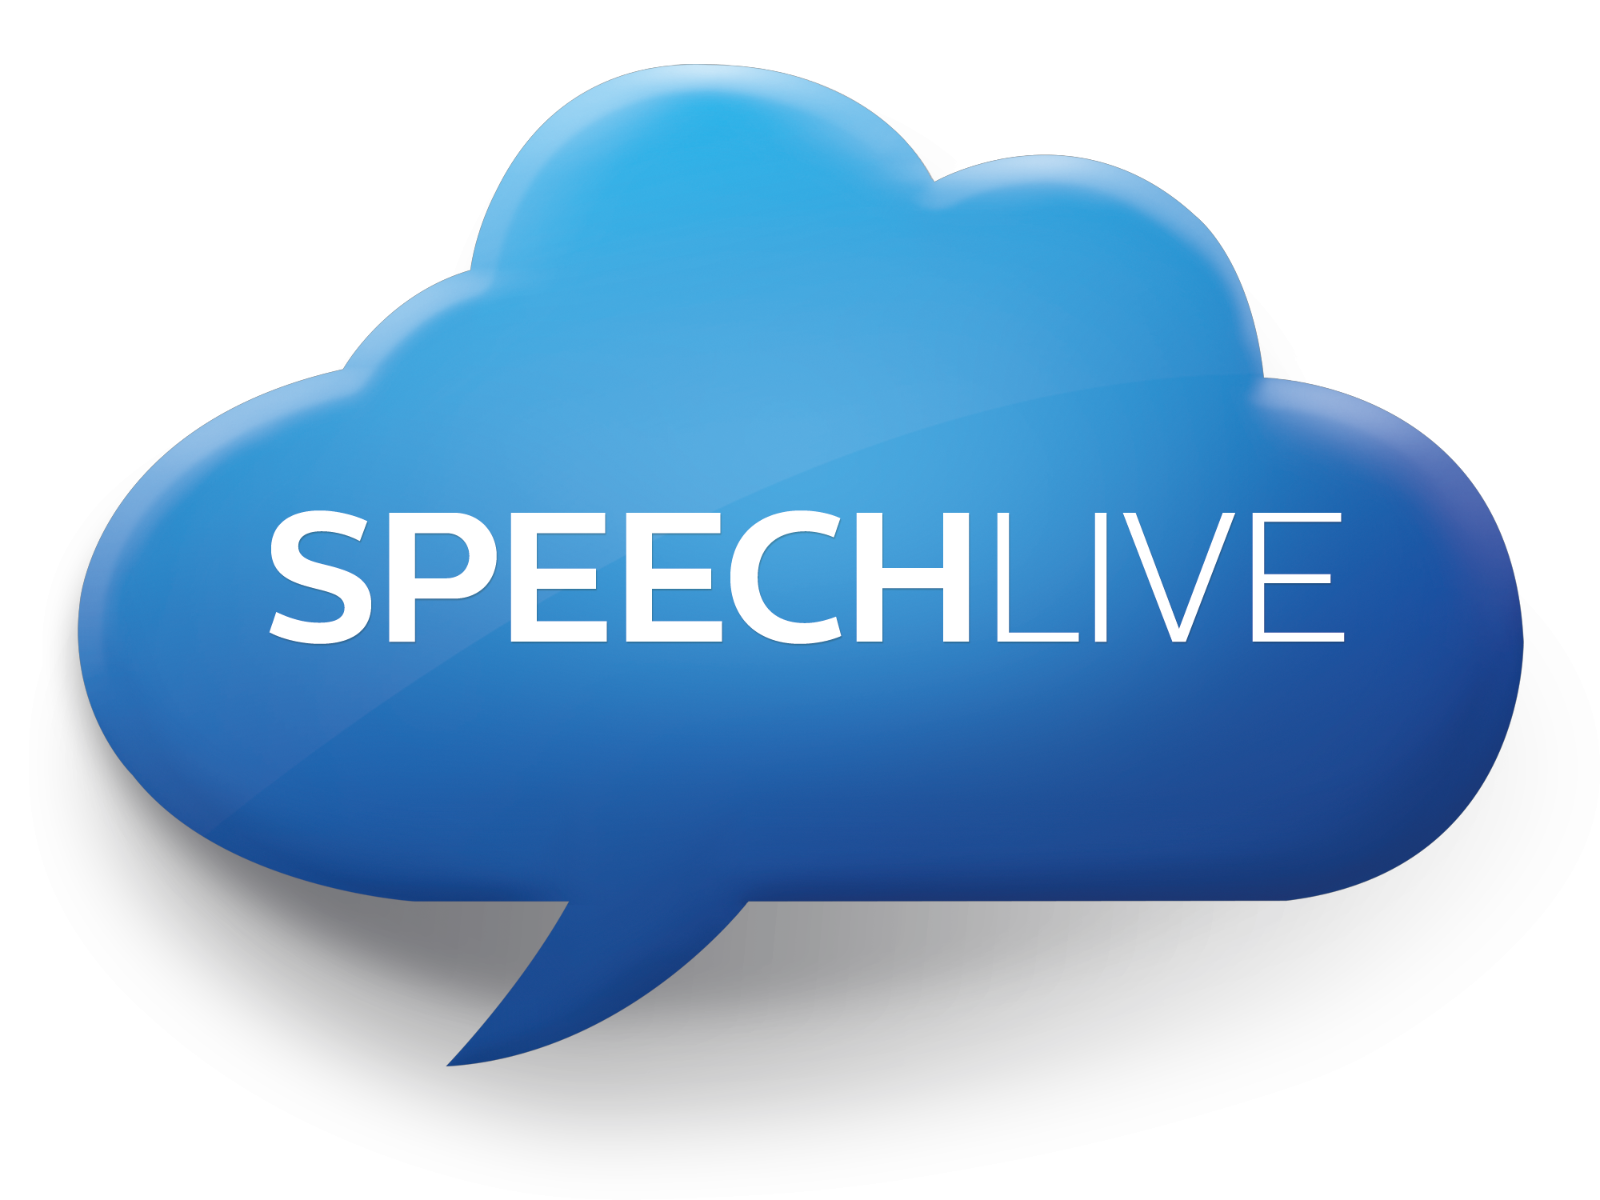 SpeechLive Cloud Dictation with smartphone app